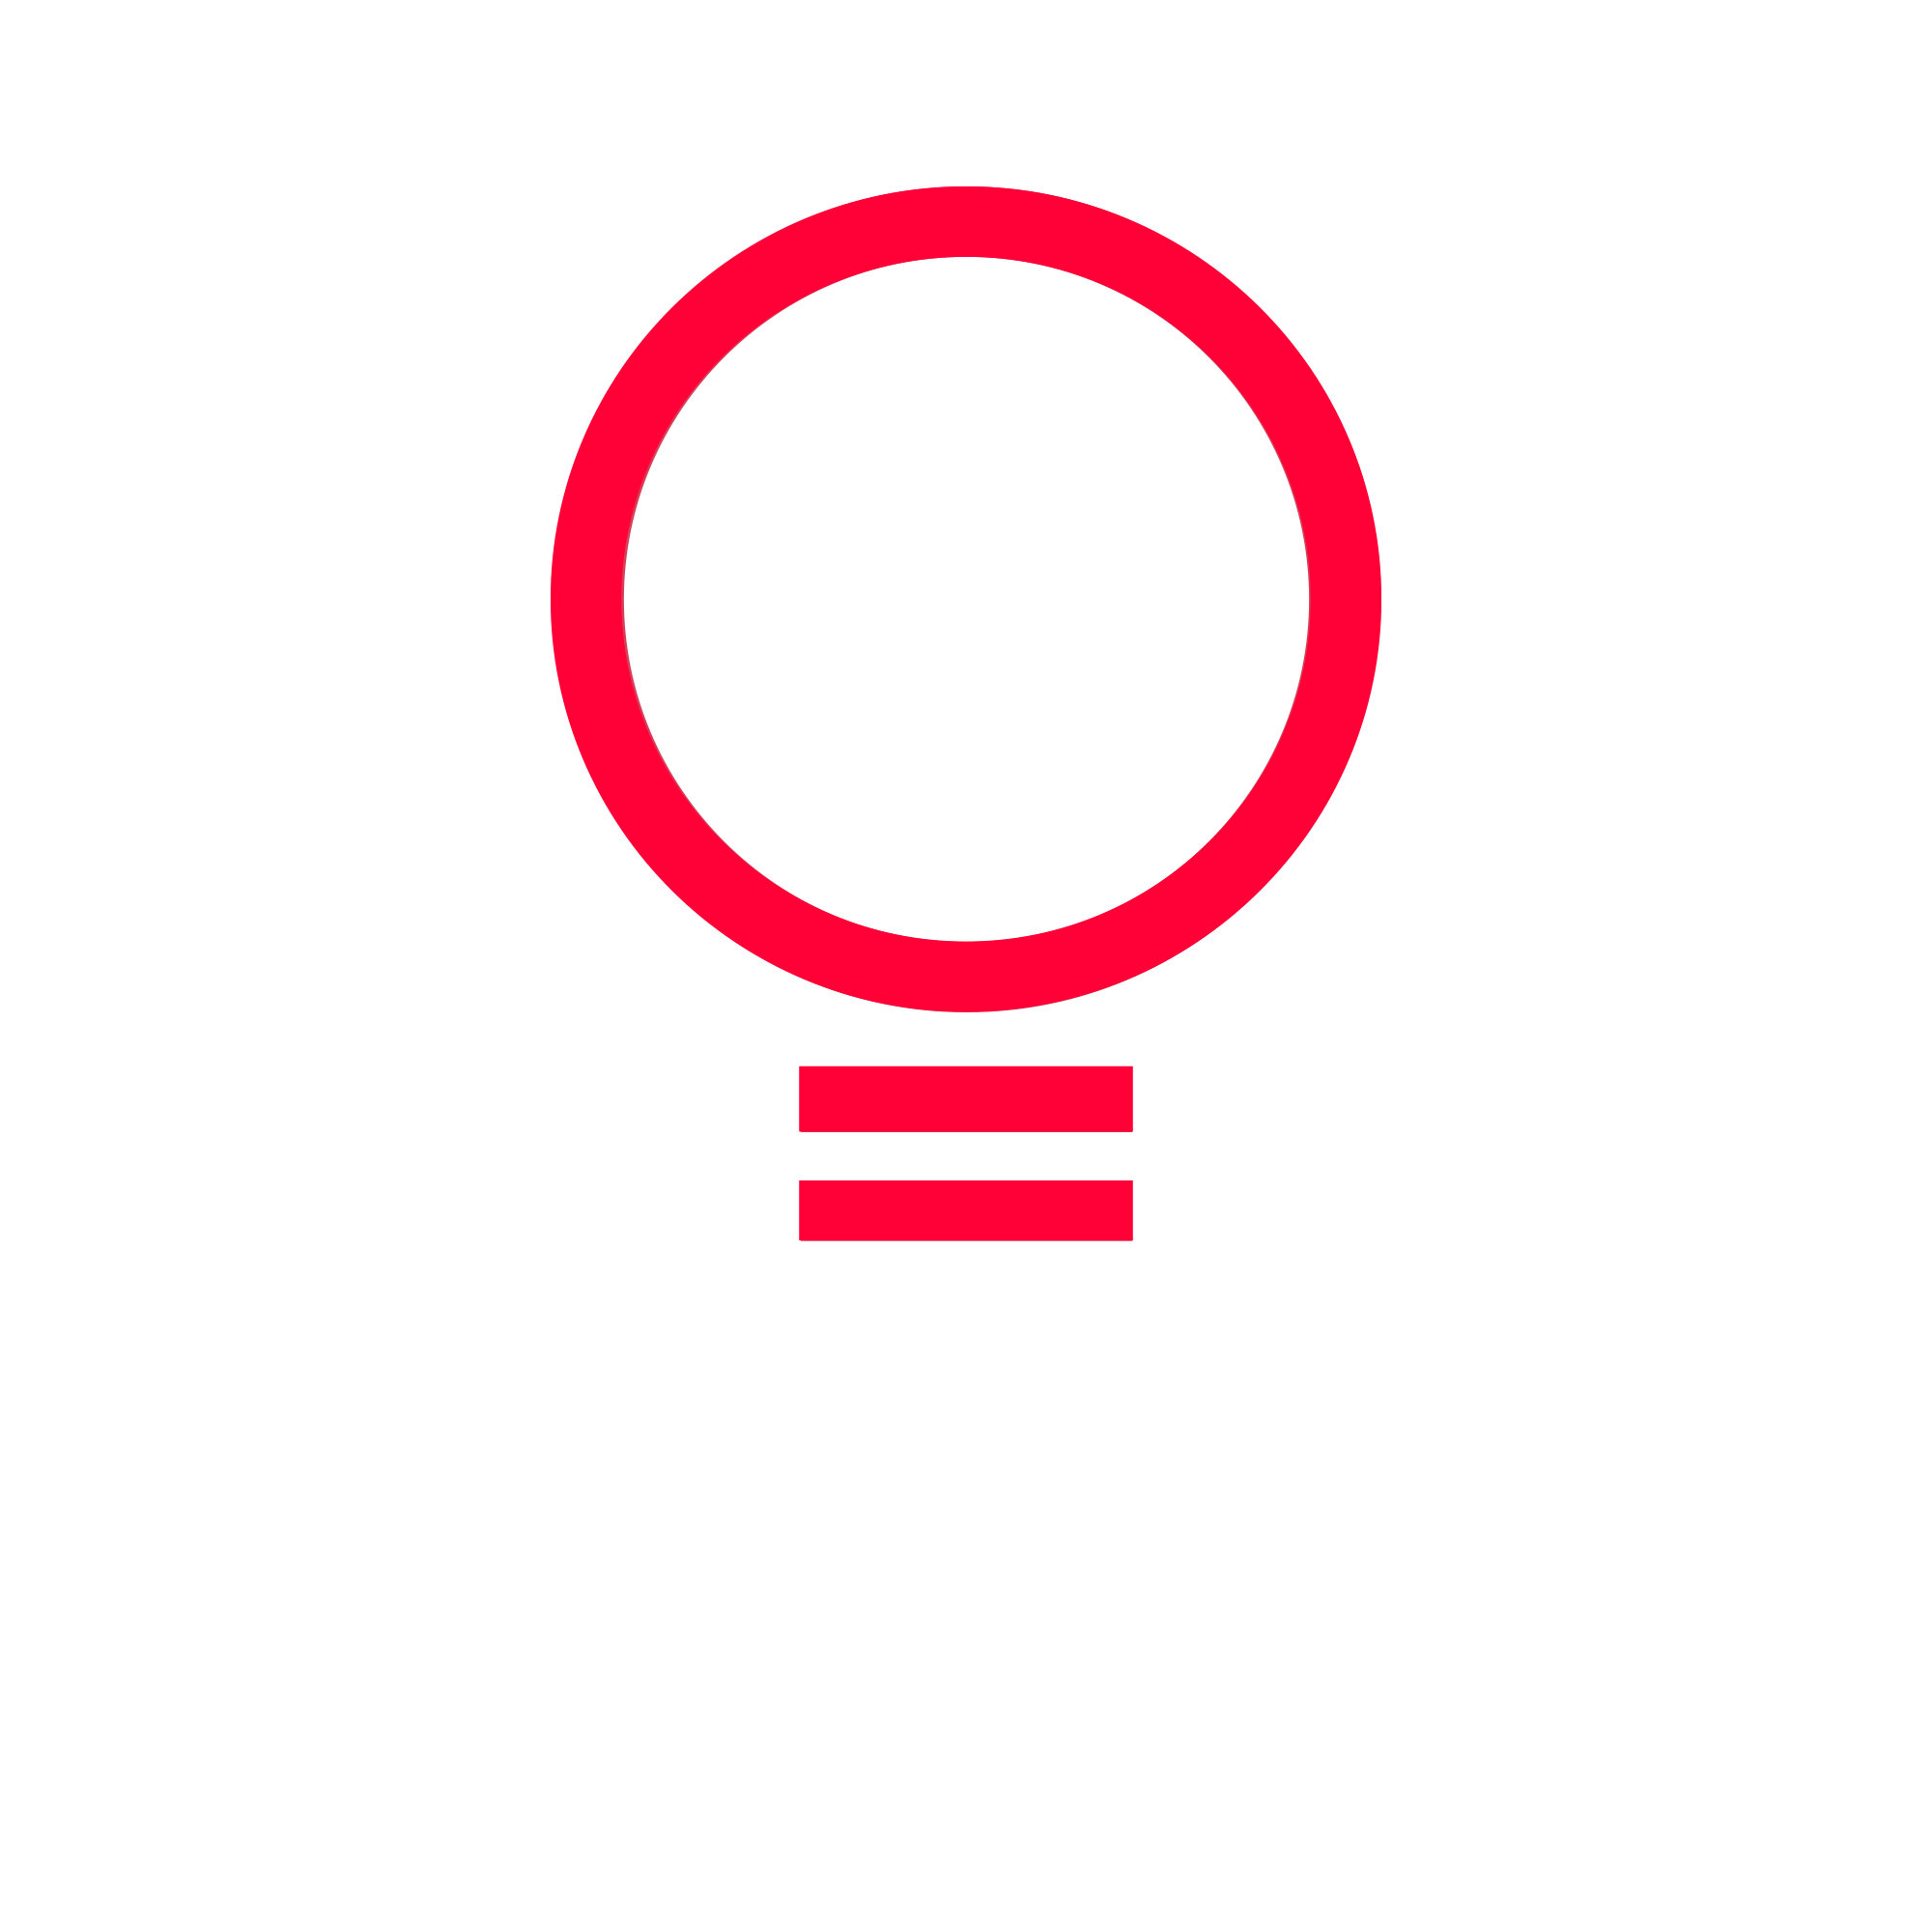 We are Factory